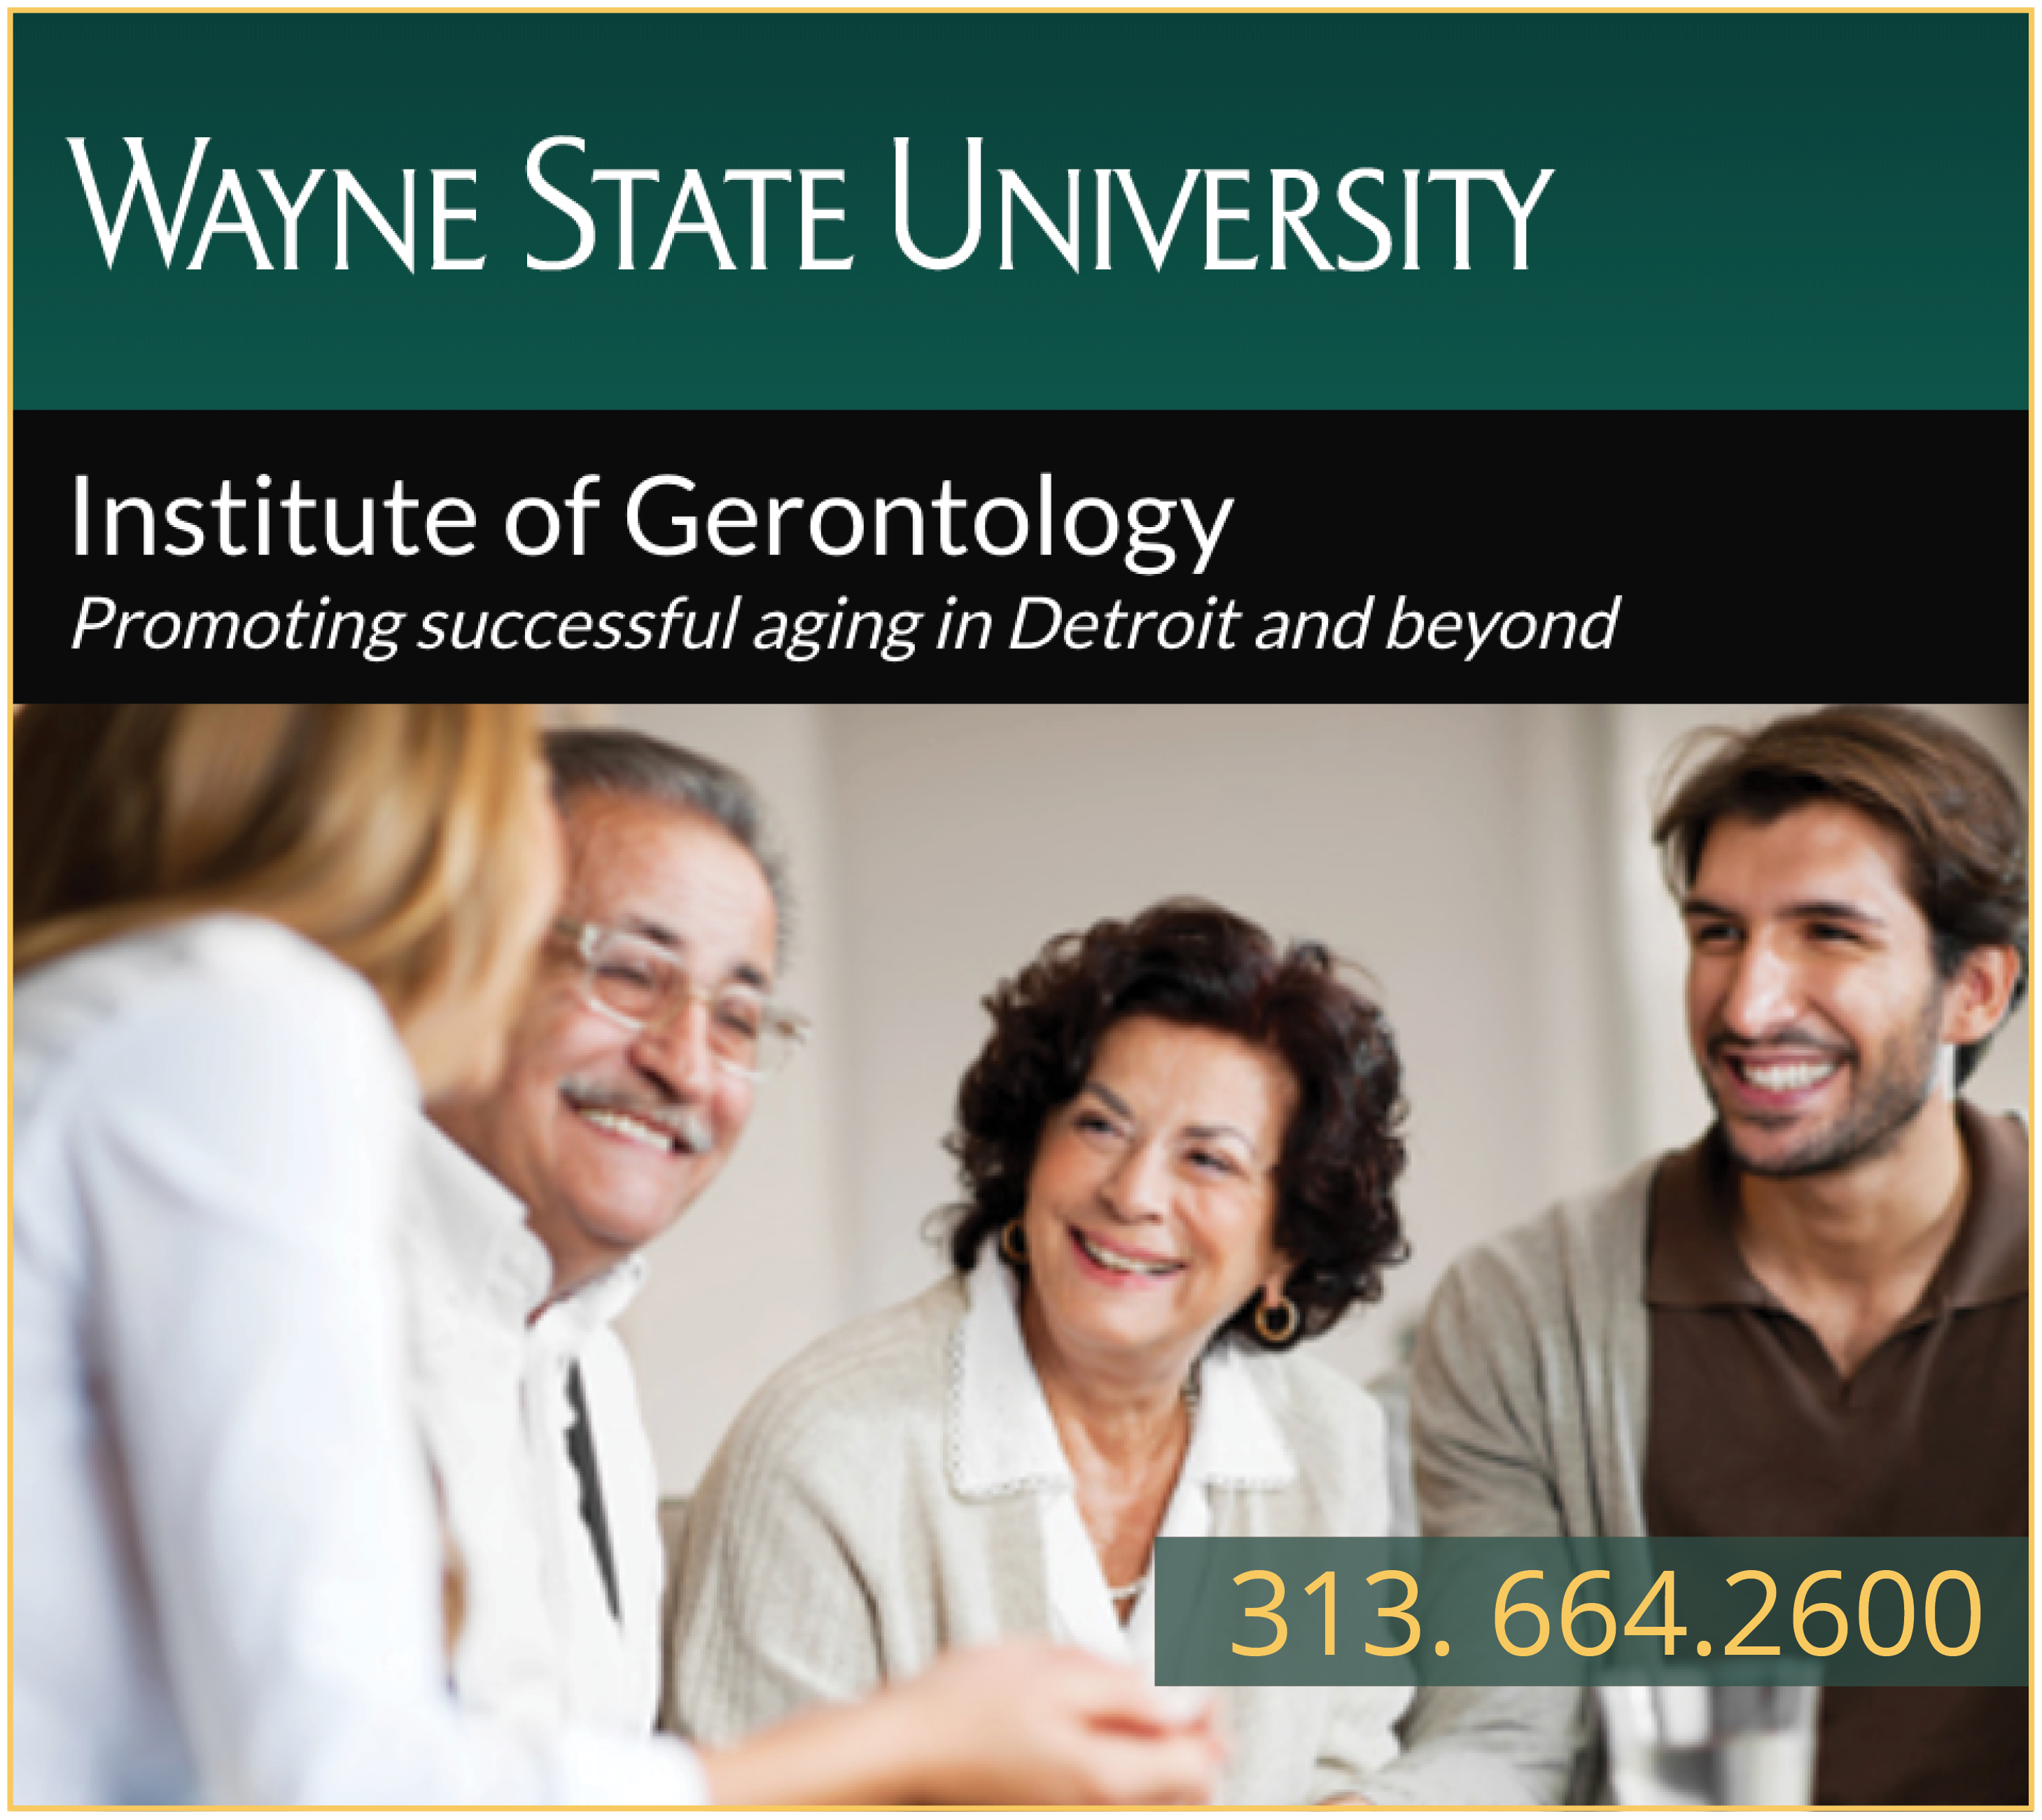 Wayne State University Institute of Gerontology